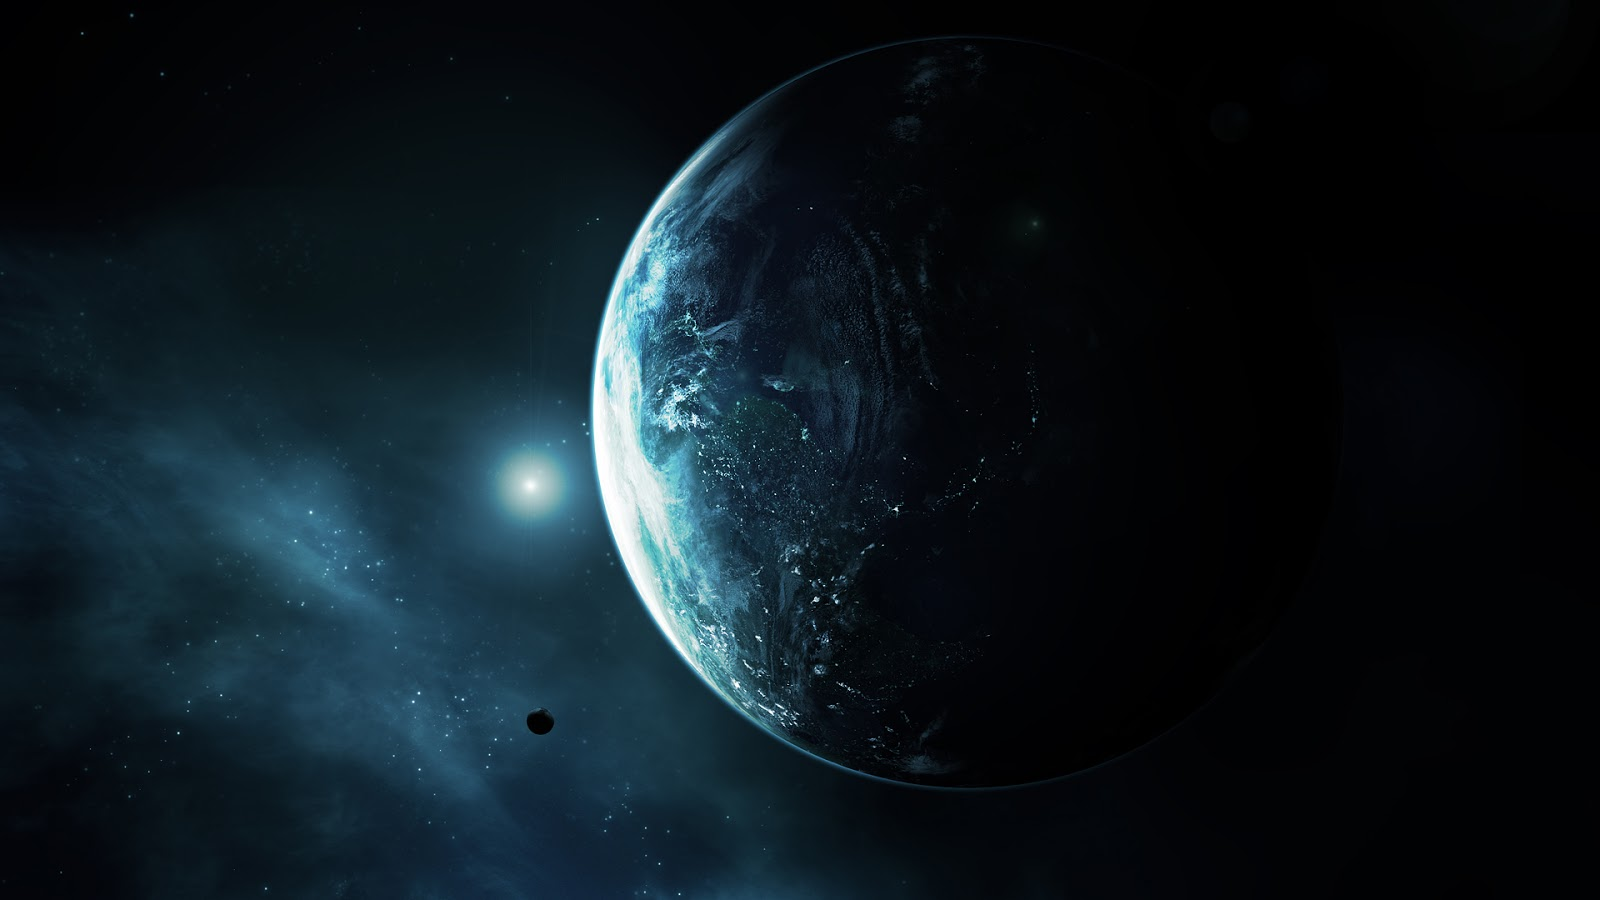 Free Download Cell Phone Wallpapers Earth Wallpaper High Resolution 1600x900 For Your Desktop Mobile Tablet Explore 75 Earth Wallpaper Earth From Space Wallpaper Planet Earth Wallpaper Earth Wallpaper High Resolution